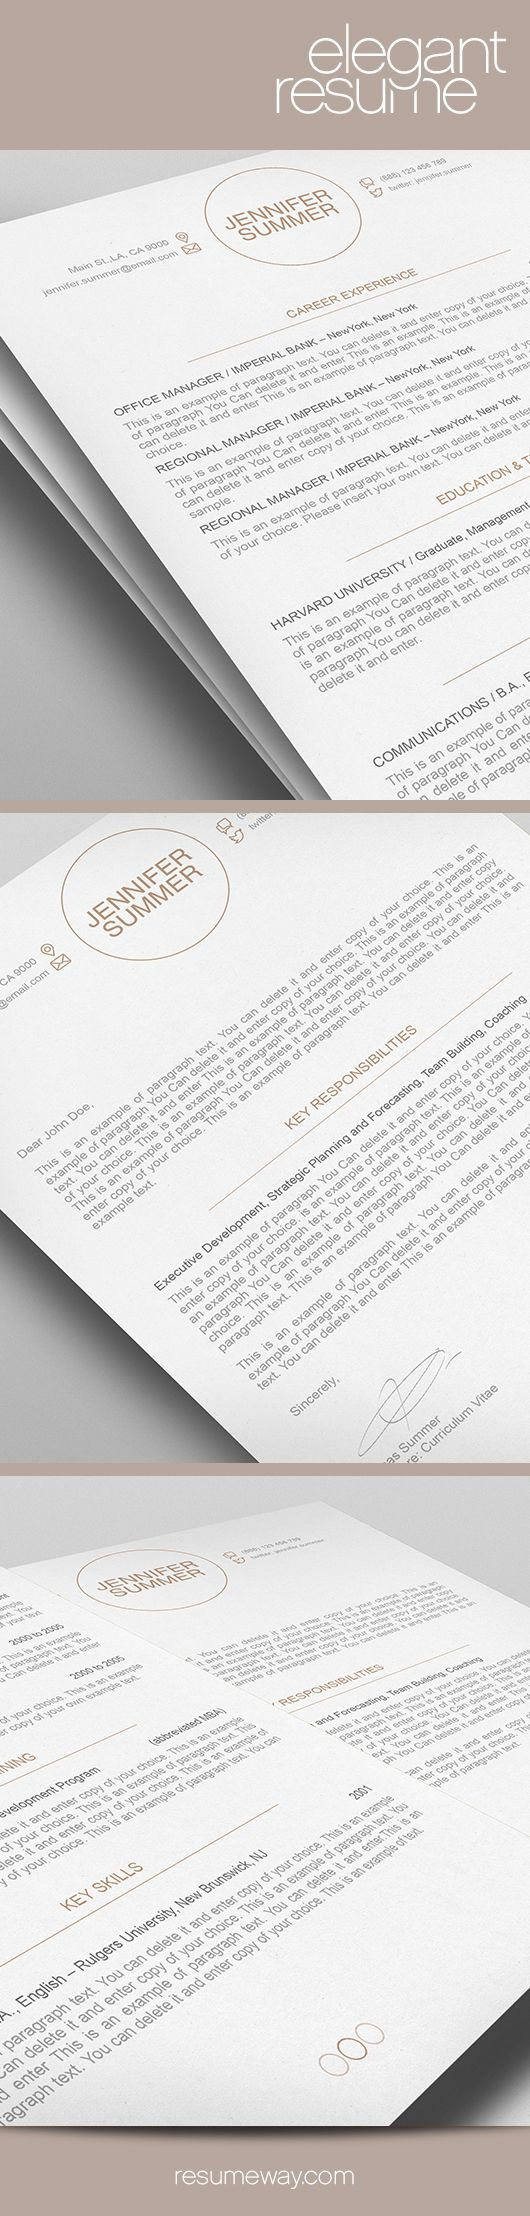 best ideas about cover letter example resume elegant resume template premium line of resume cover letter templates easy edit